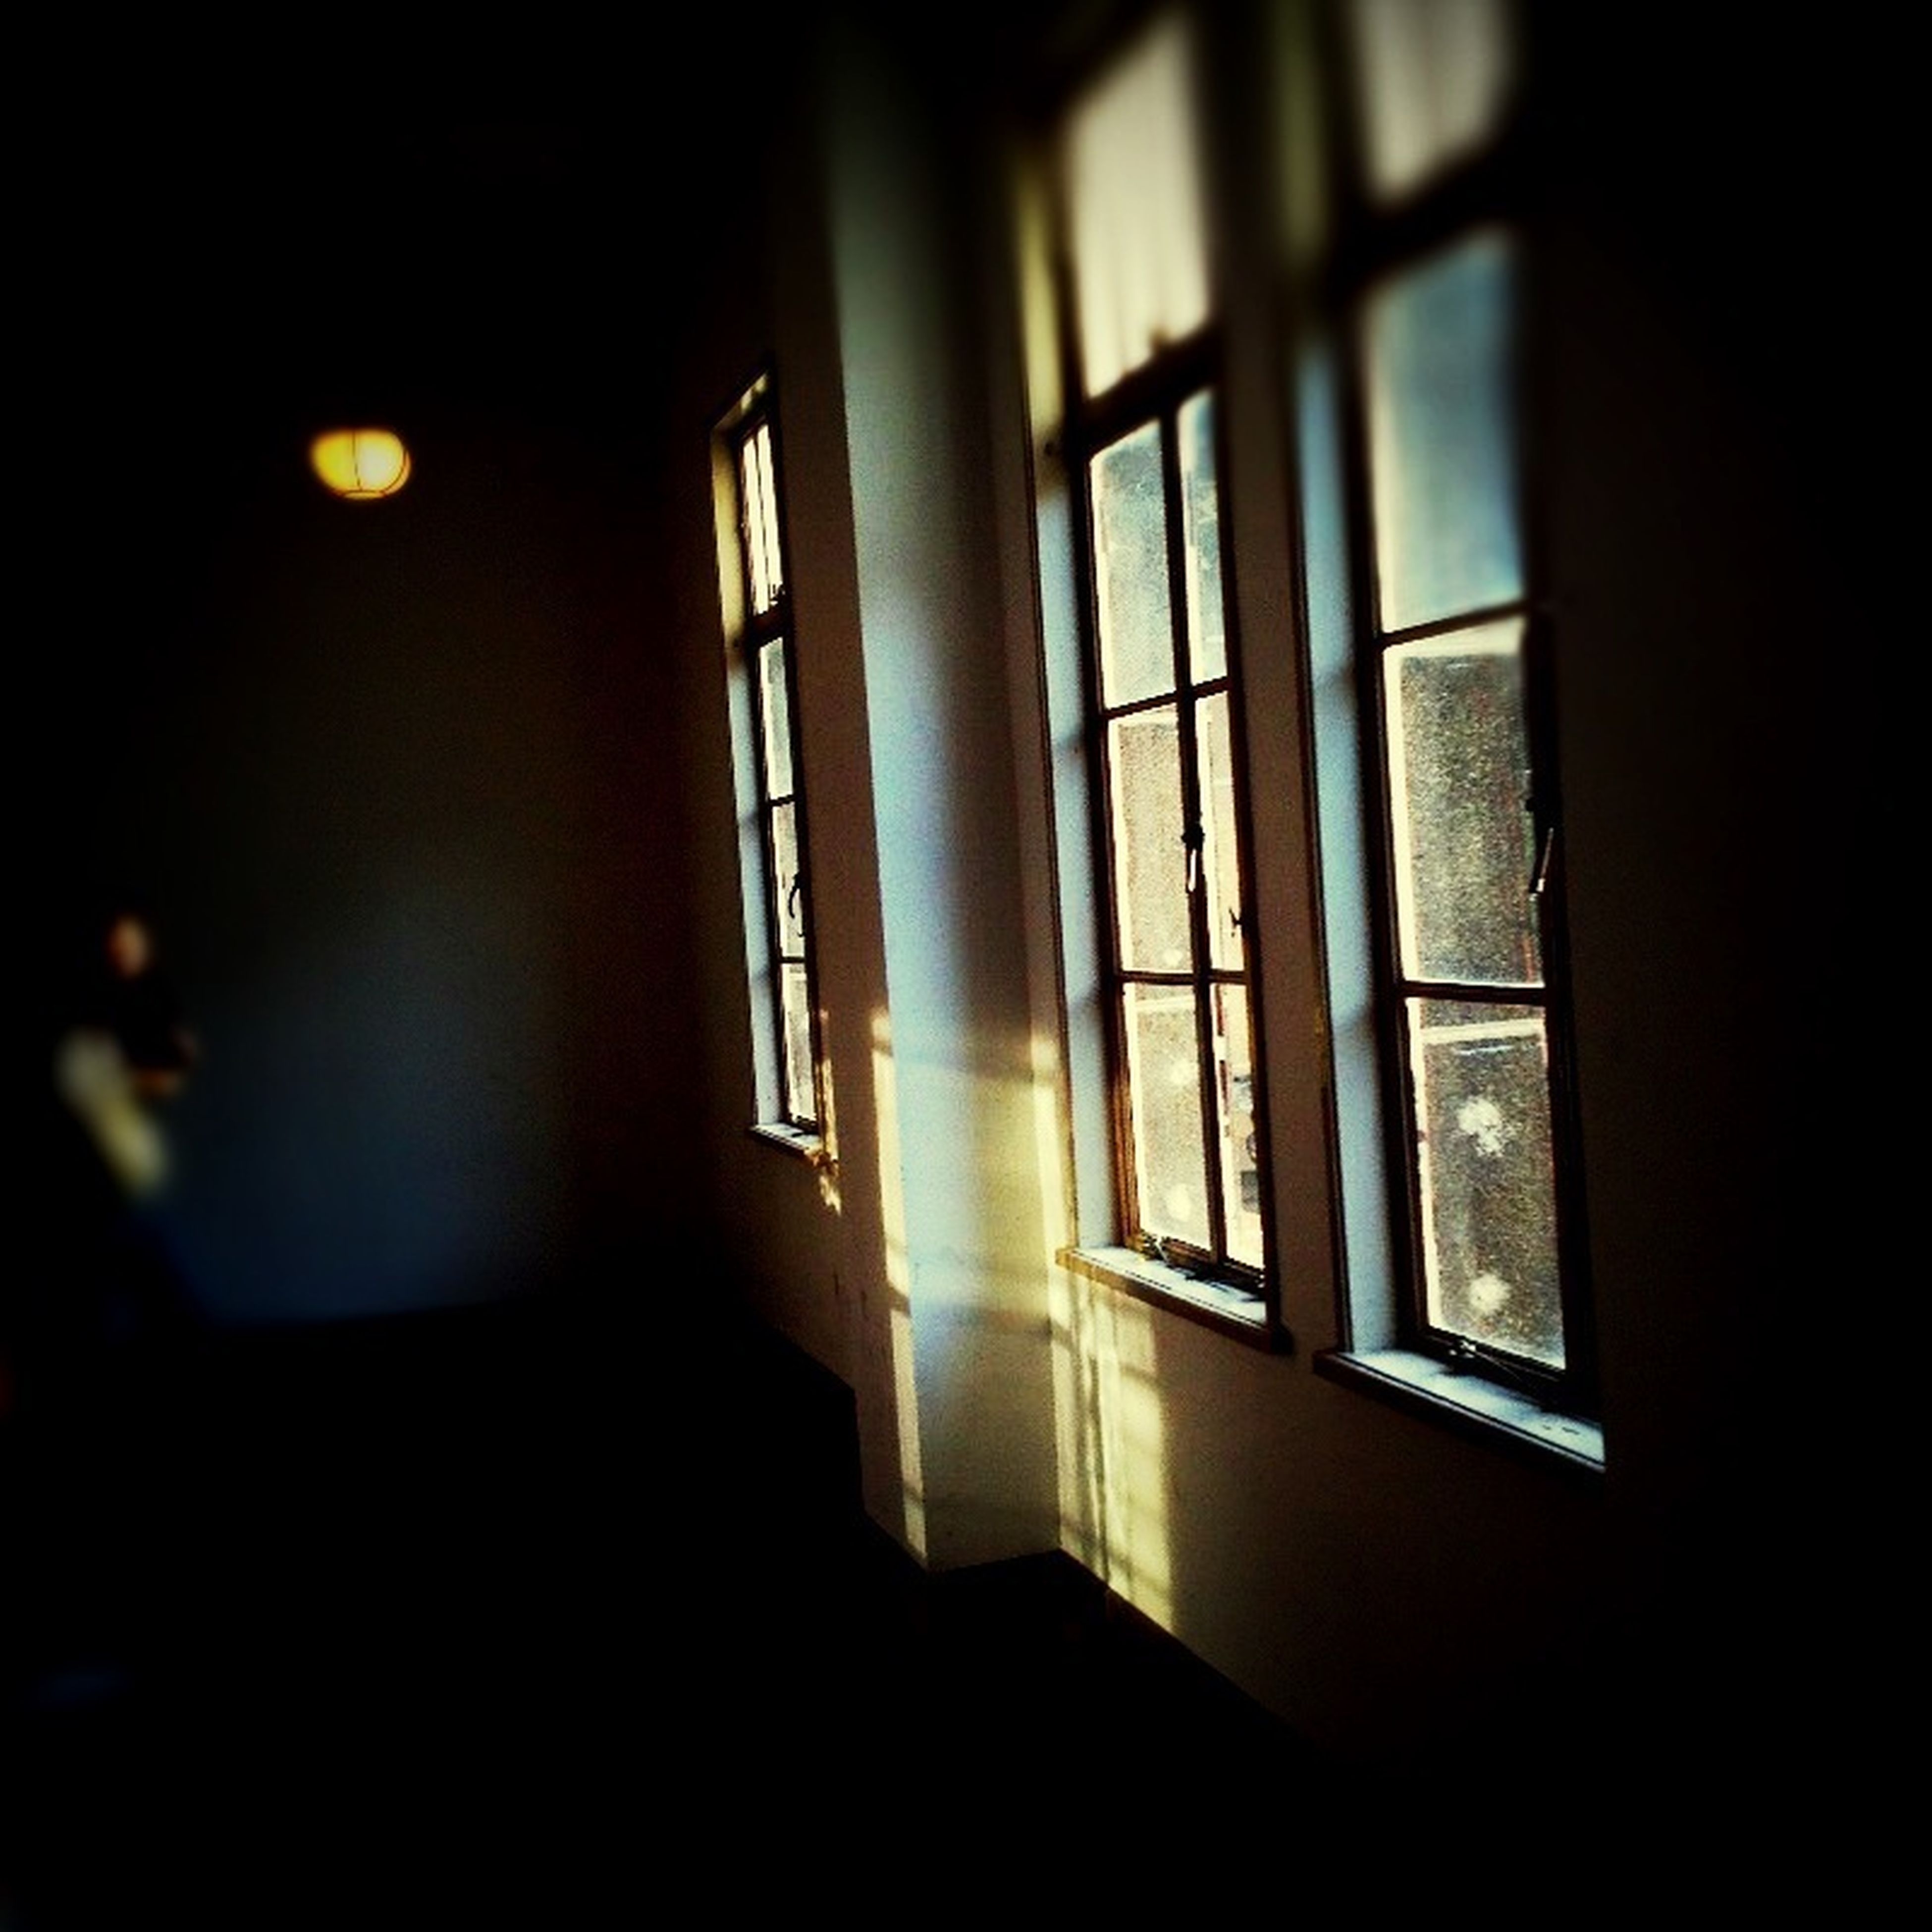 indoors, window, architecture, built structure, home interior, glass - material, dark, house, transparent, building, no people, sunlight, wall - building feature, wall, interior, day, door, empty, absence, corridor